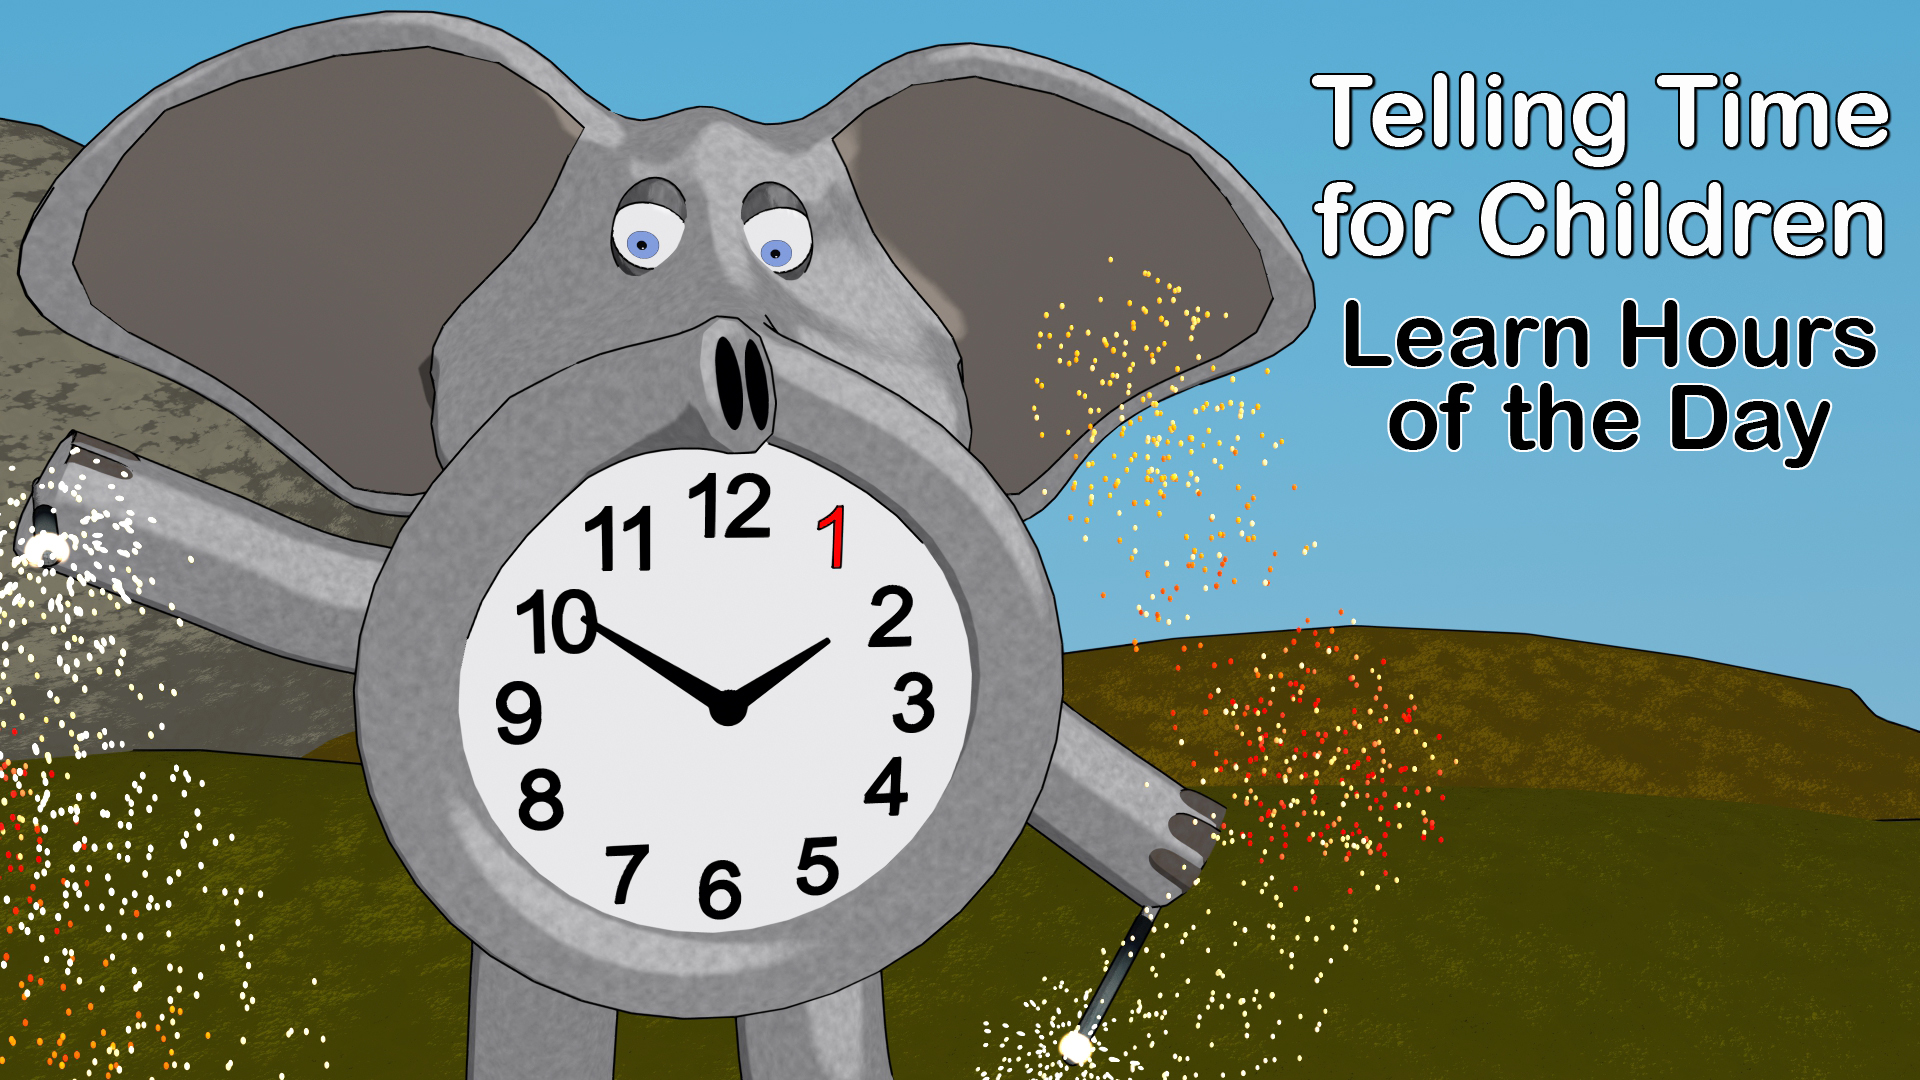 Telling Time for Children - Learn Hours of the Day